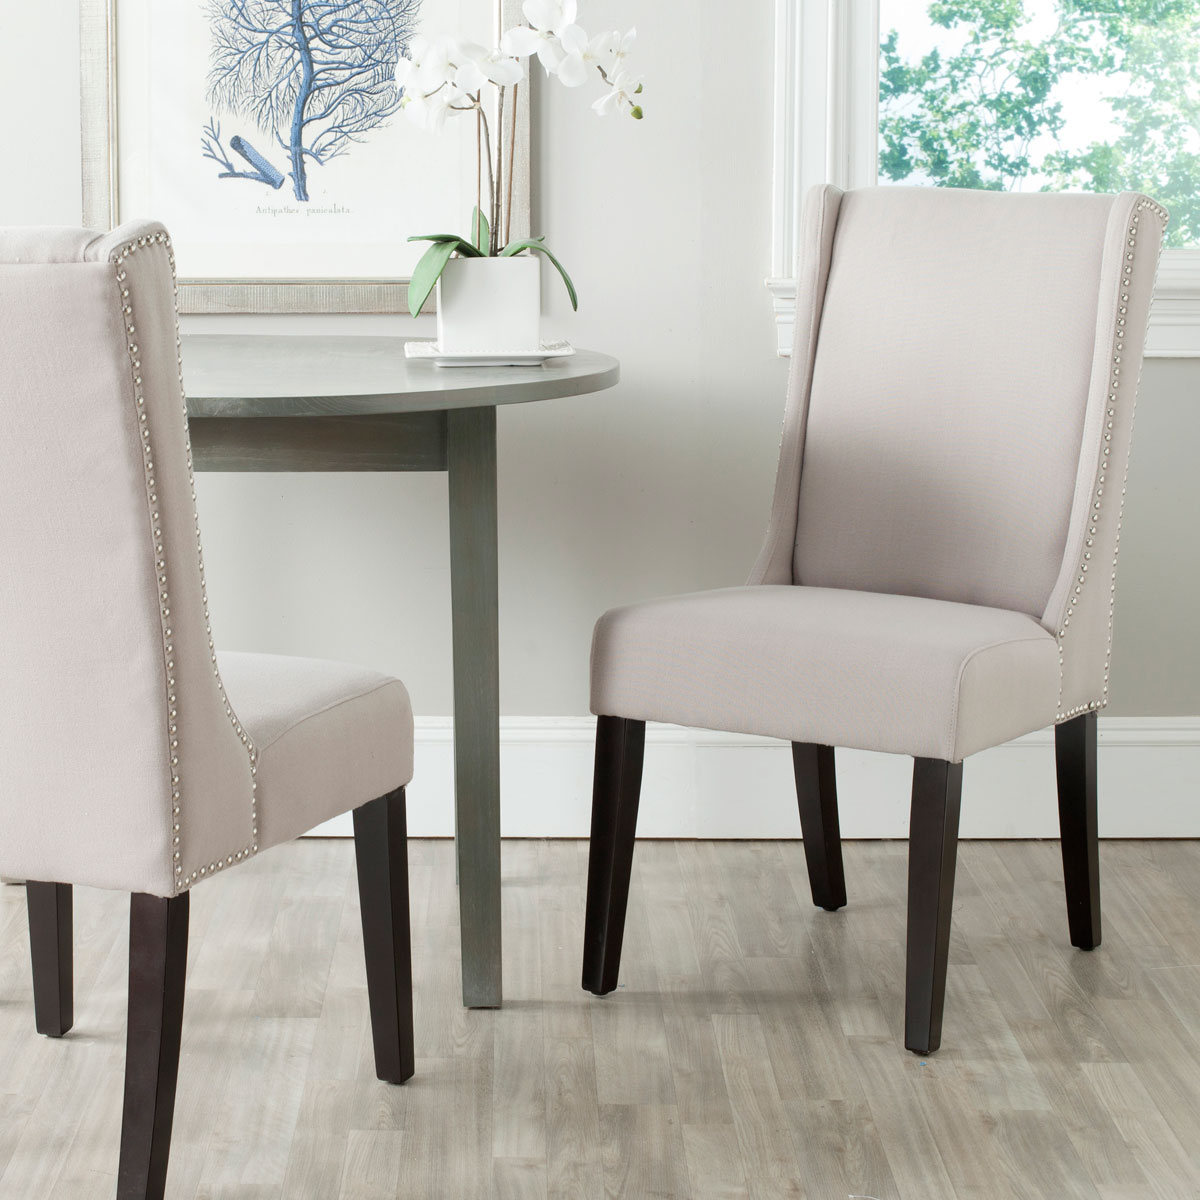 mcr4714a set2 dining chairs furniture by safavieh. Black Bedroom Furniture Sets. Home Design Ideas